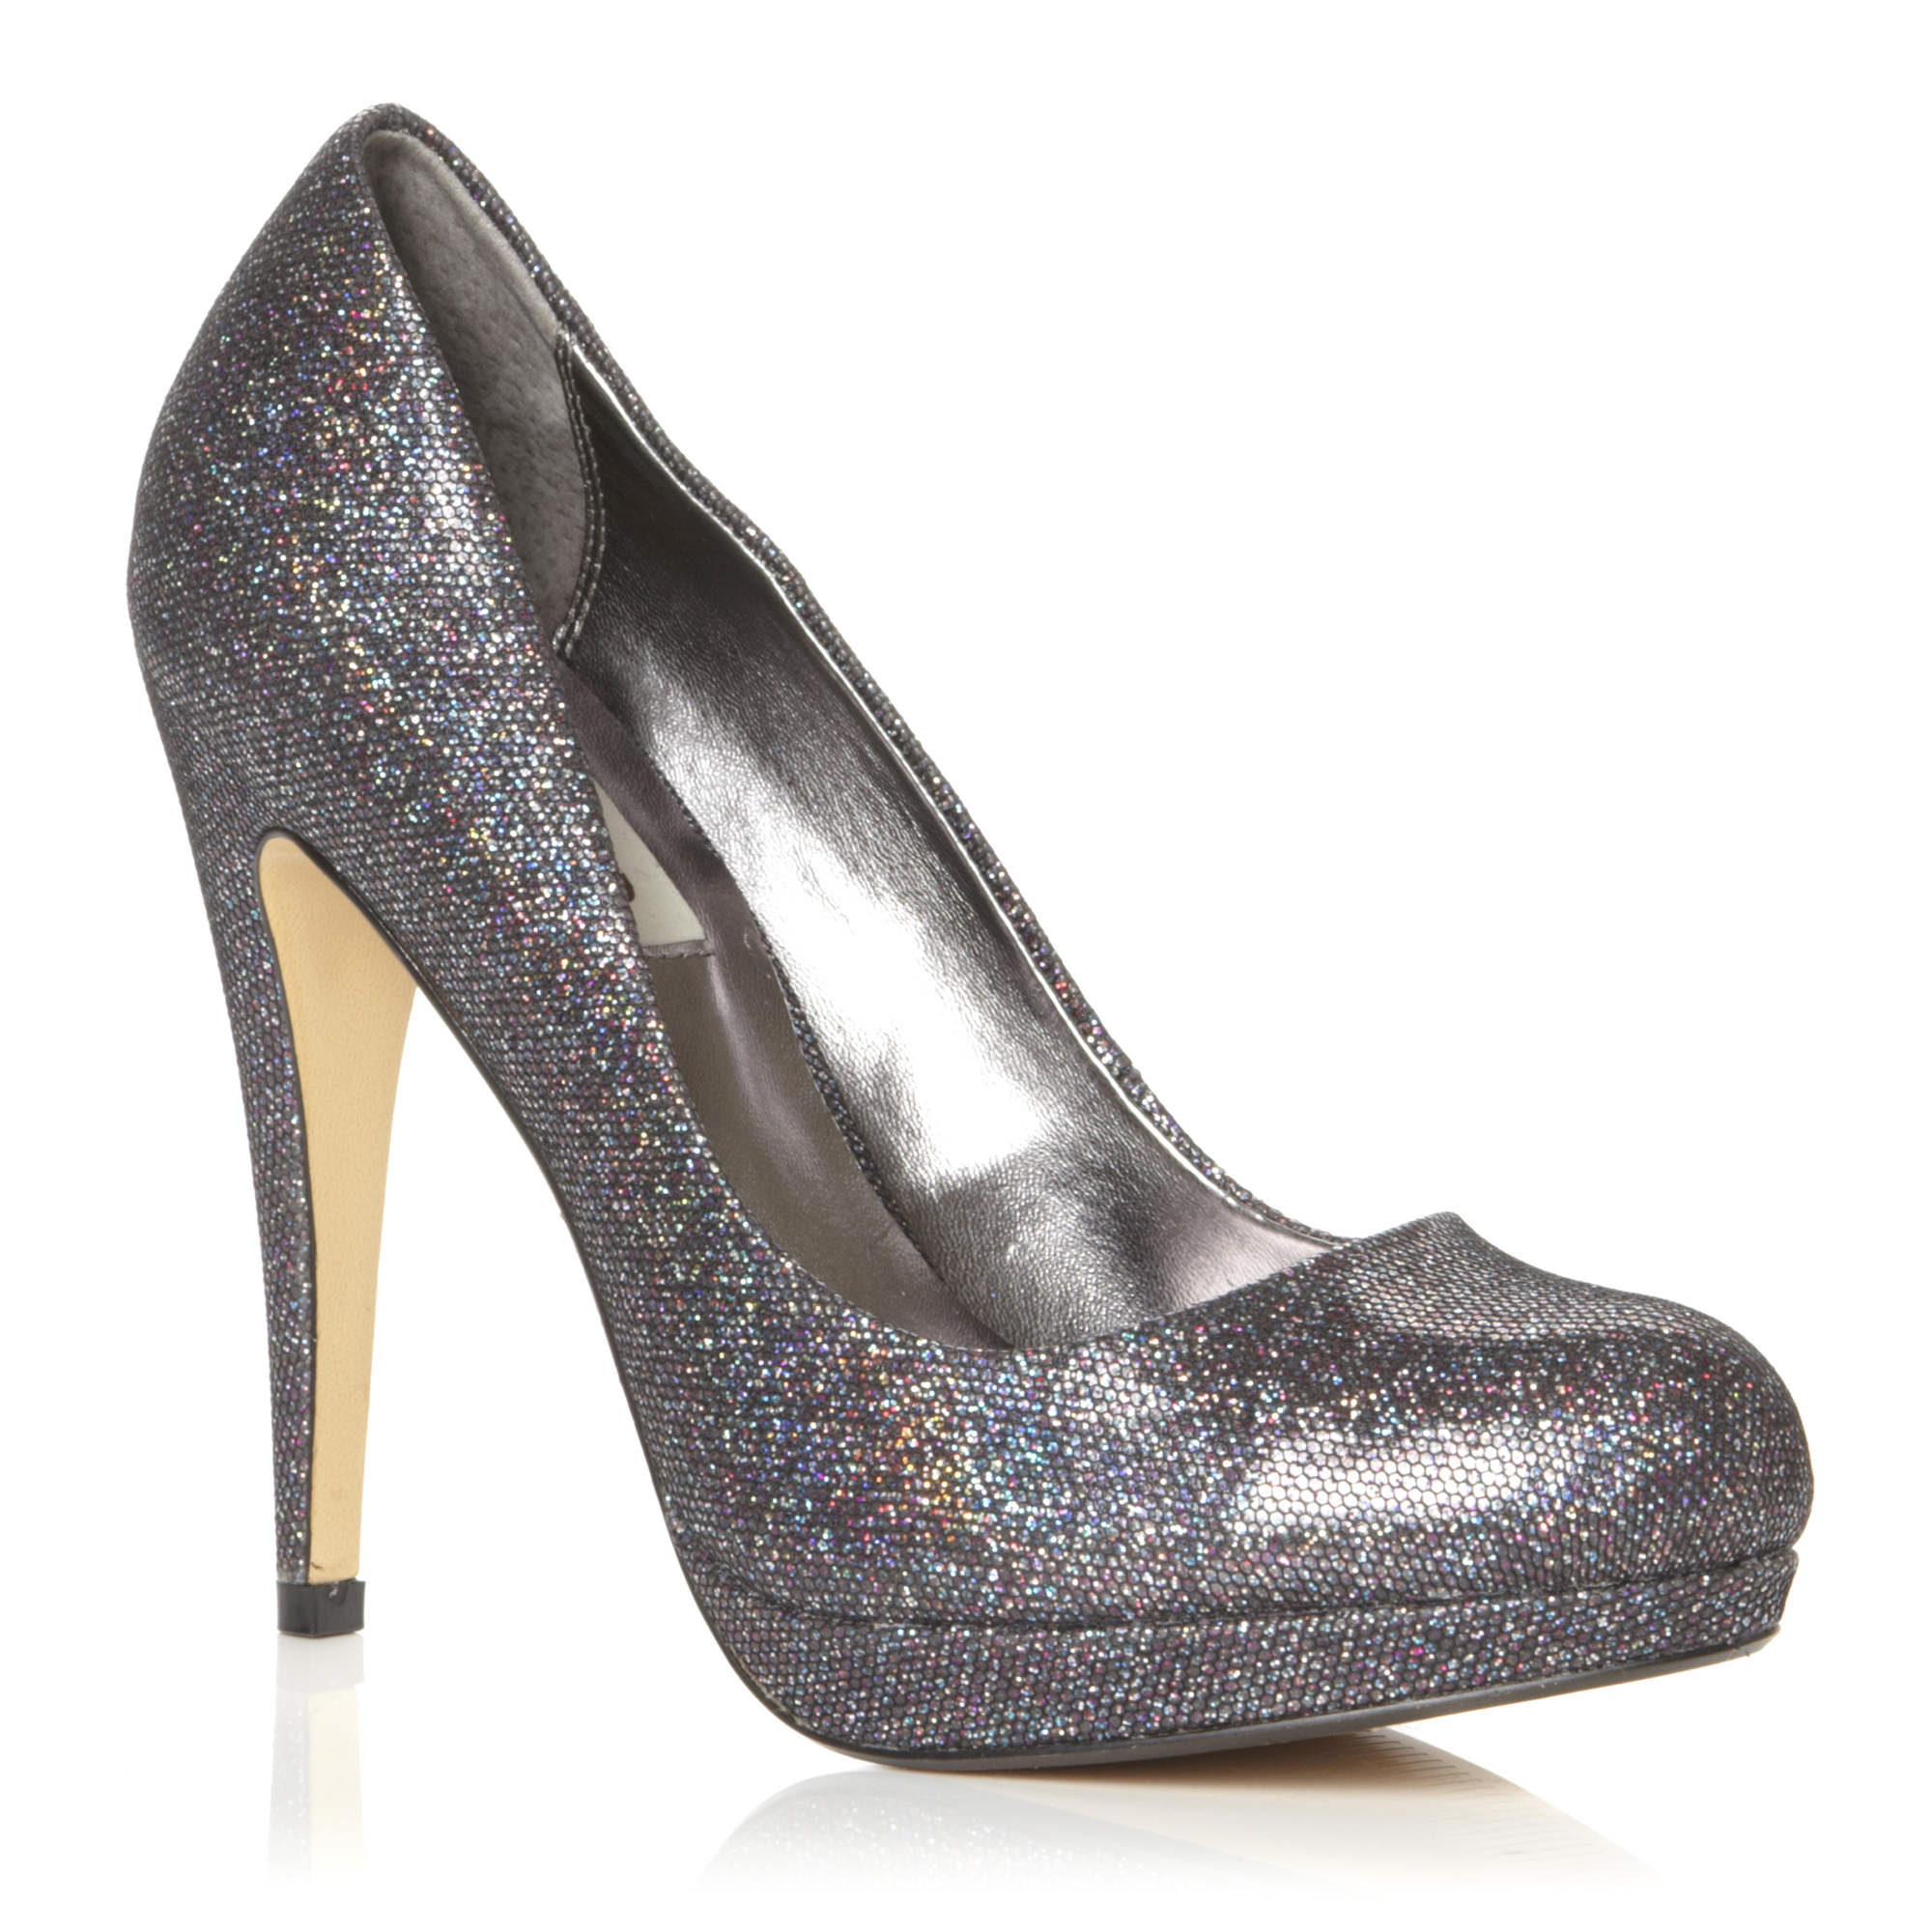 Shop a wide range of Shoes & boots products and more at our online shop today. Menu Grey pewter glitter pandora pumps Save. Was £ Then £ Now £ > Dorothy Perkins Wide fit grey electra court shoes Save. Was £ Now £ The Collection Dark grey .